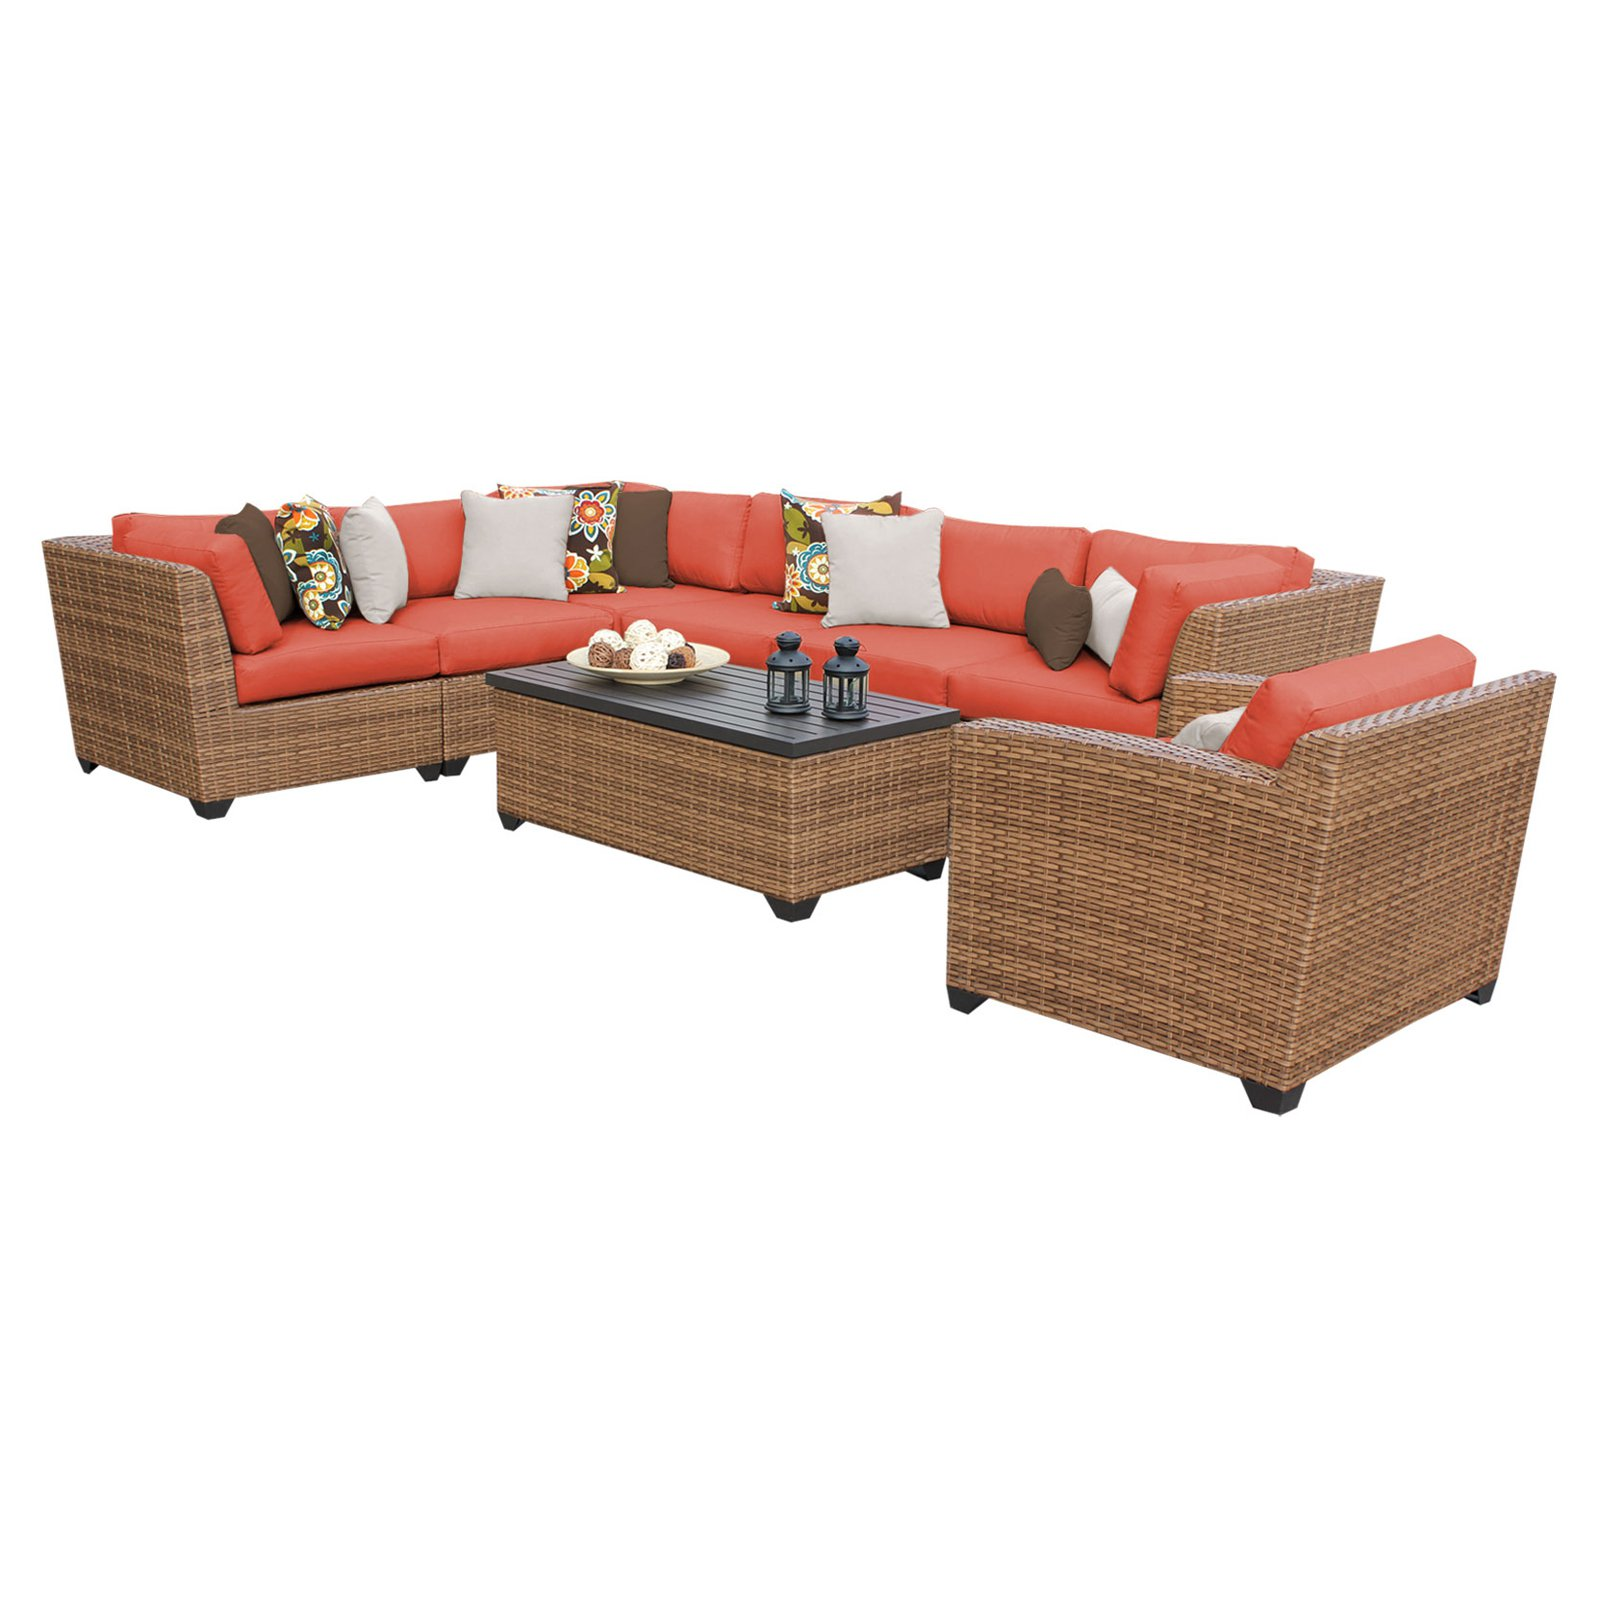 TK Classics Laguna Wicker 8 Piece Patio Conversation Set with Club Chair and 2 Sets of Cushion Covers by Delacora